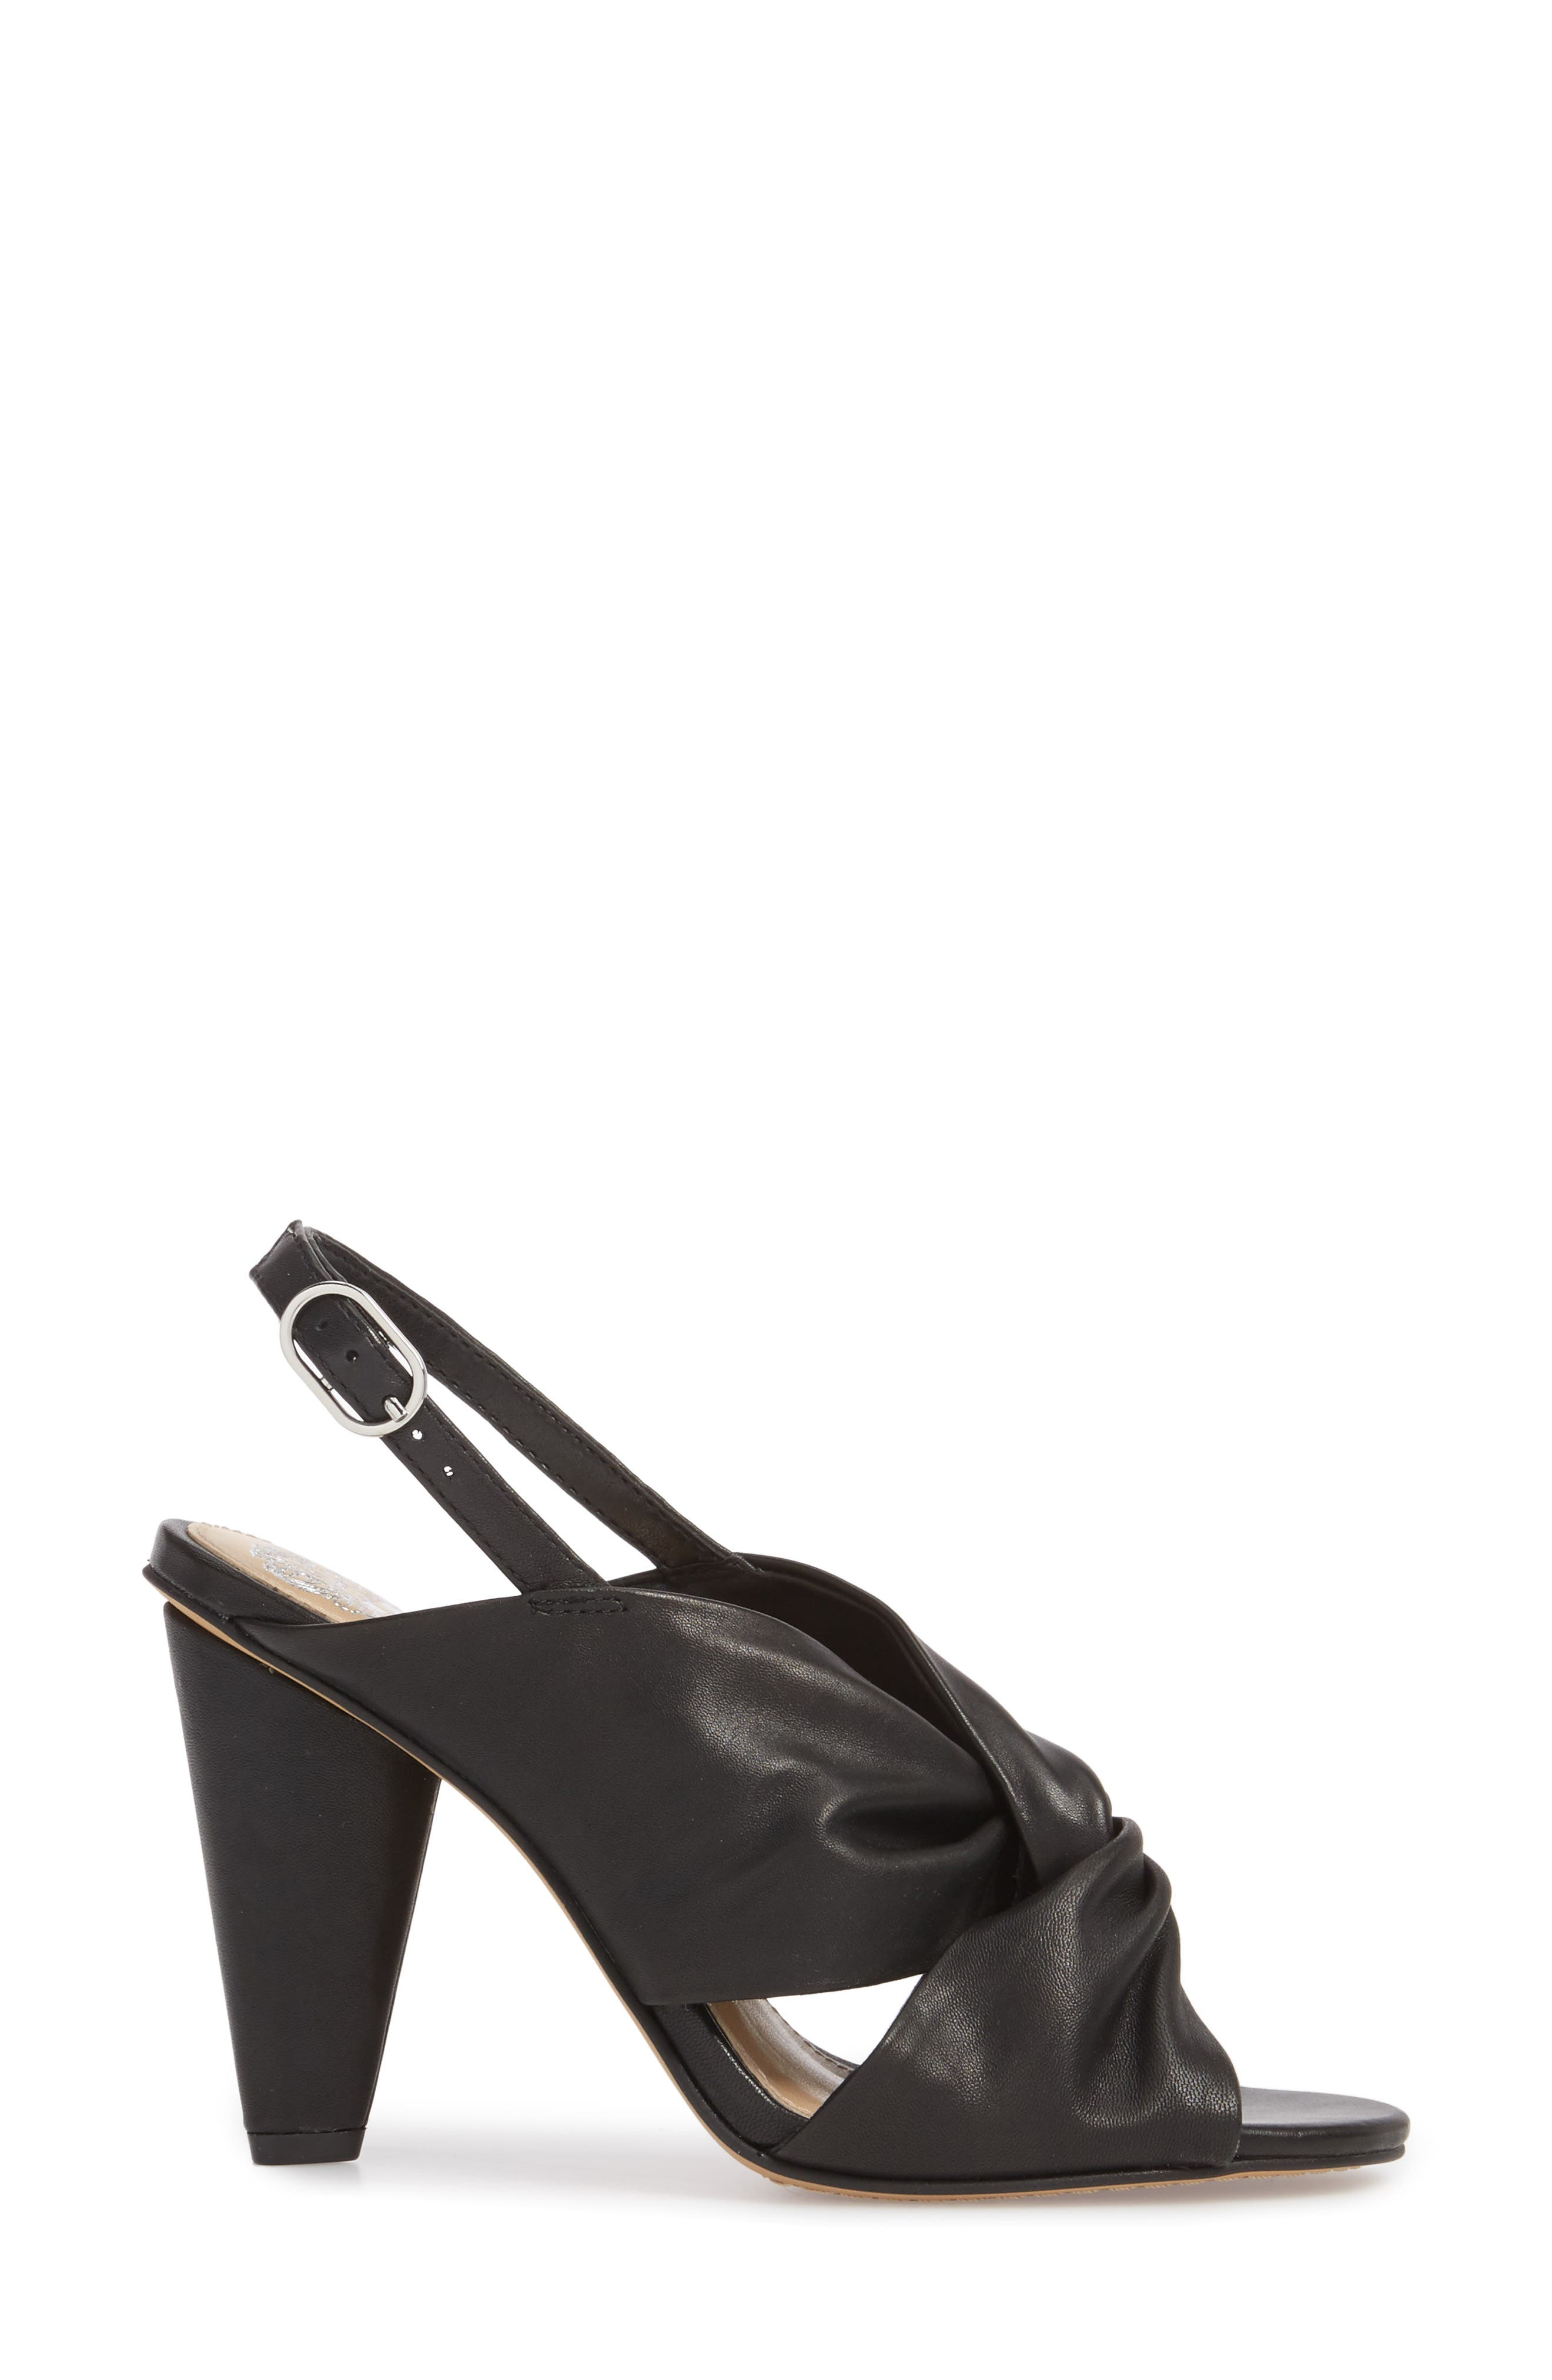 Kattie Slingback Sandal,                             Alternate thumbnail 3, color,                             BLACK LEATHER